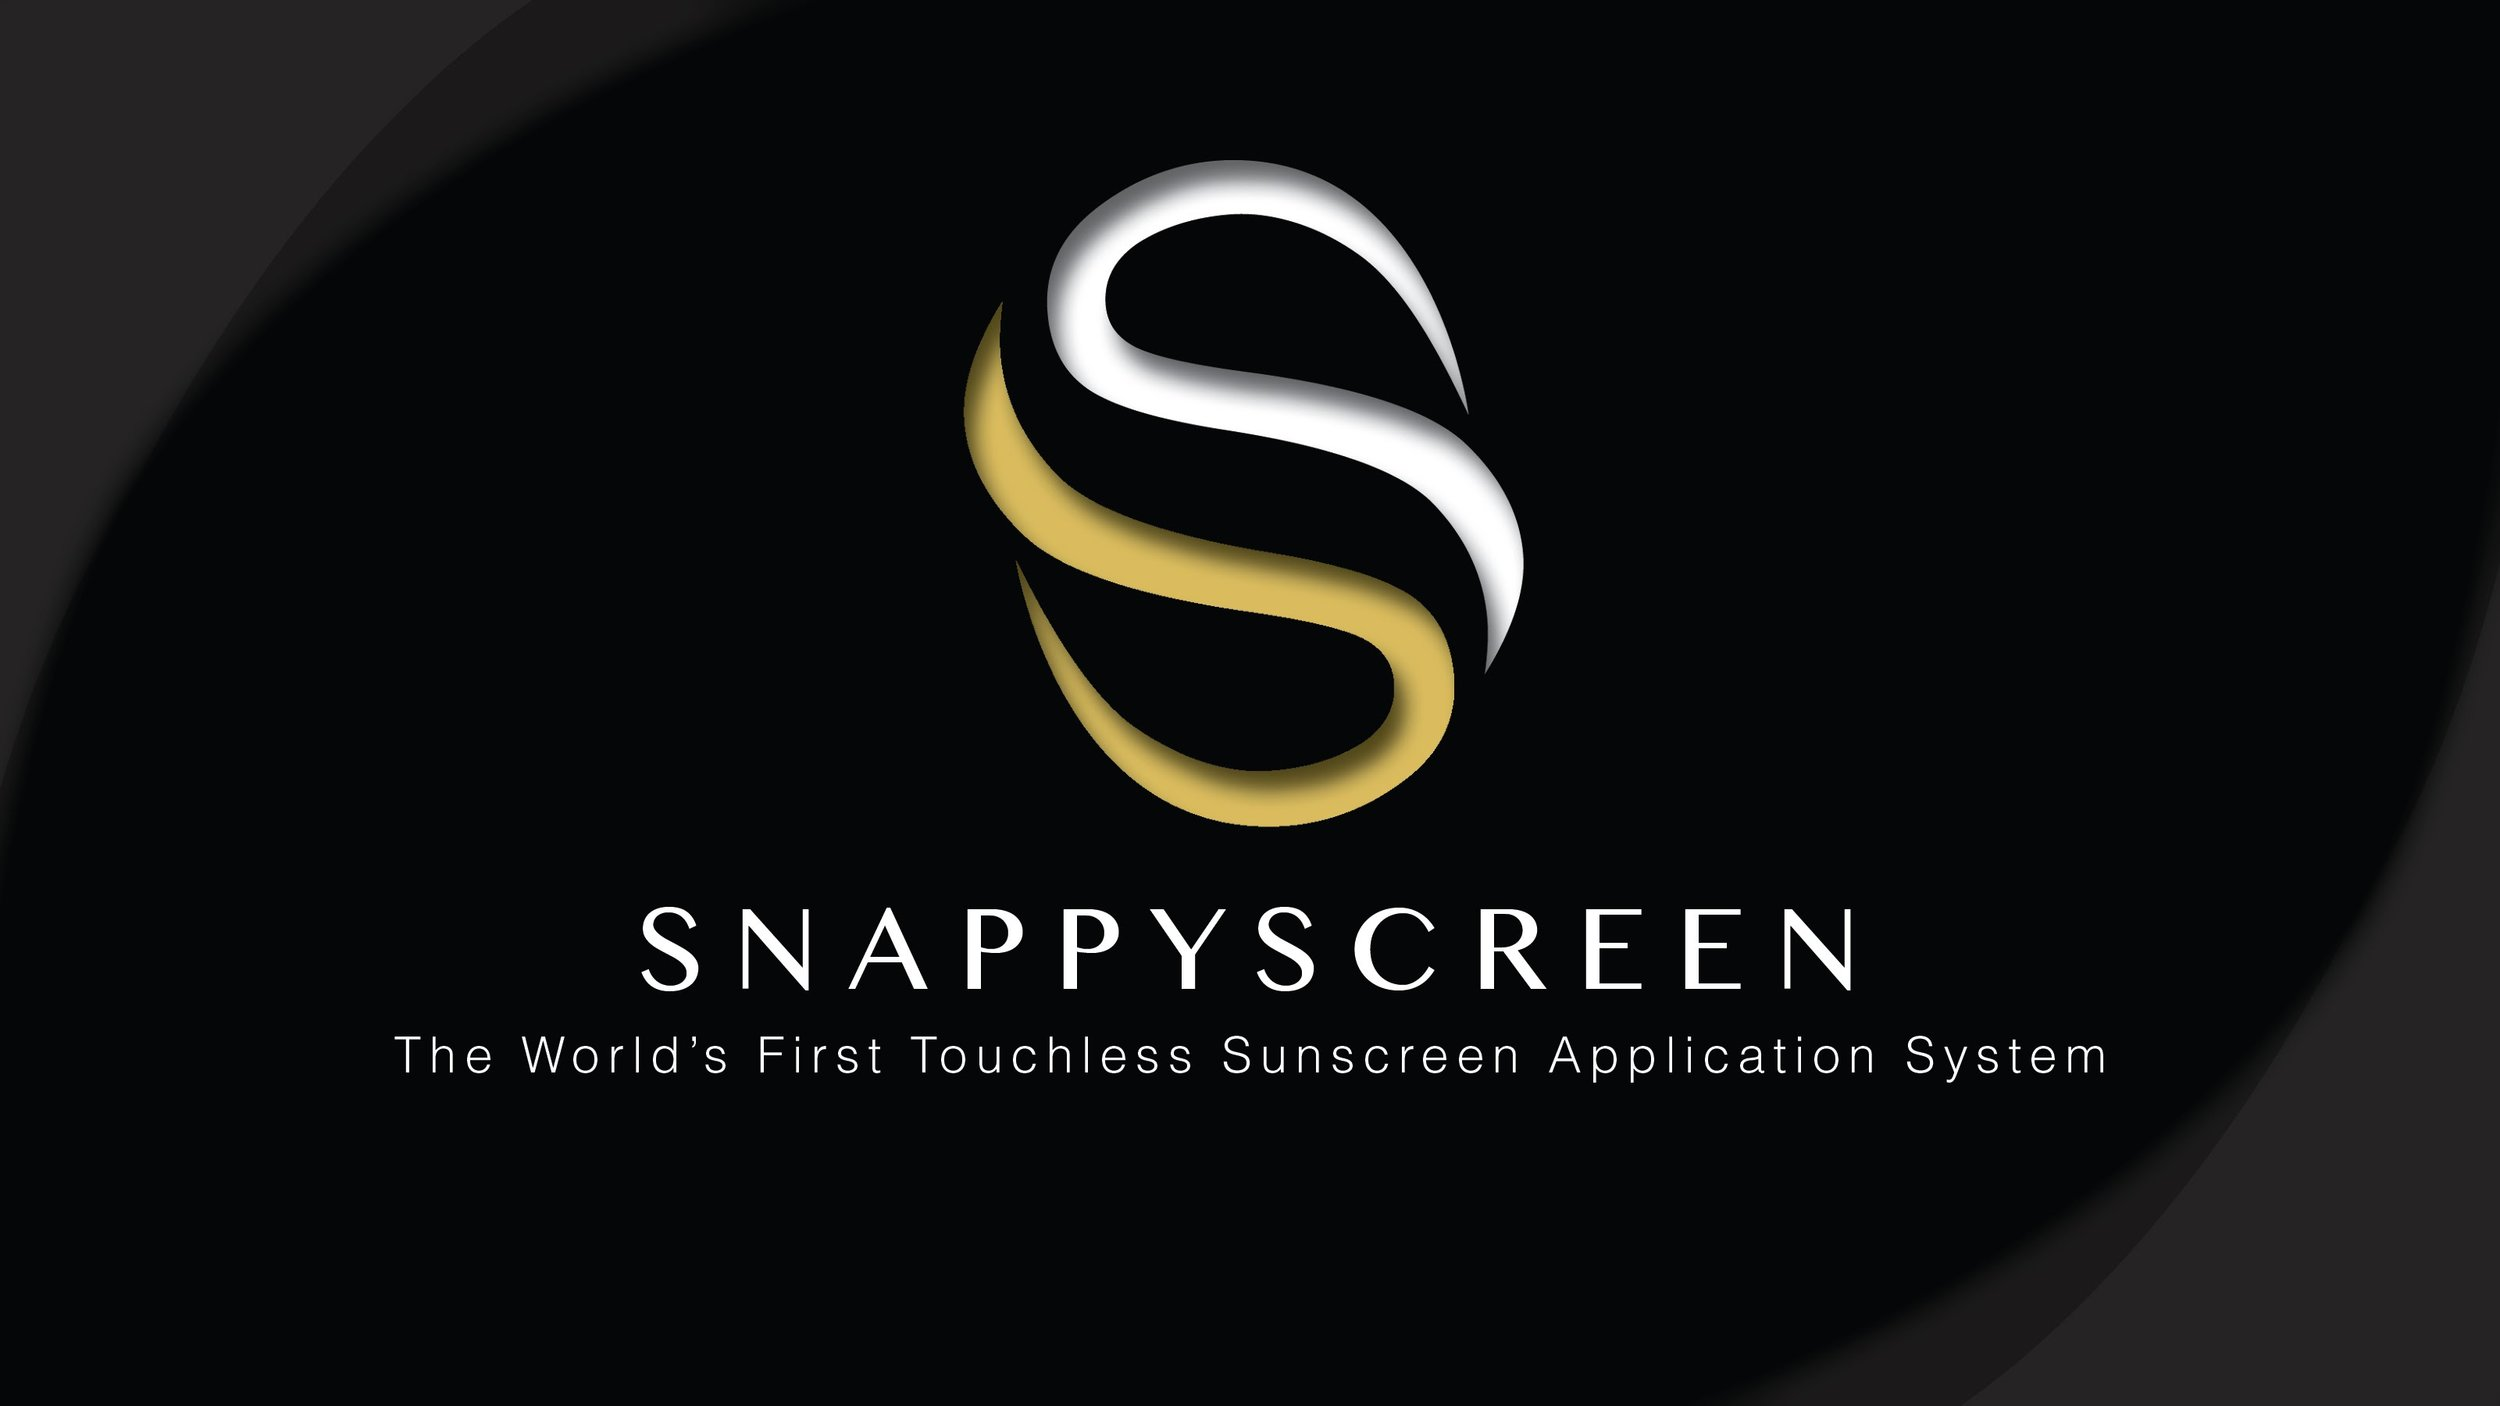 The World's First Touchless Sunscreen Application System